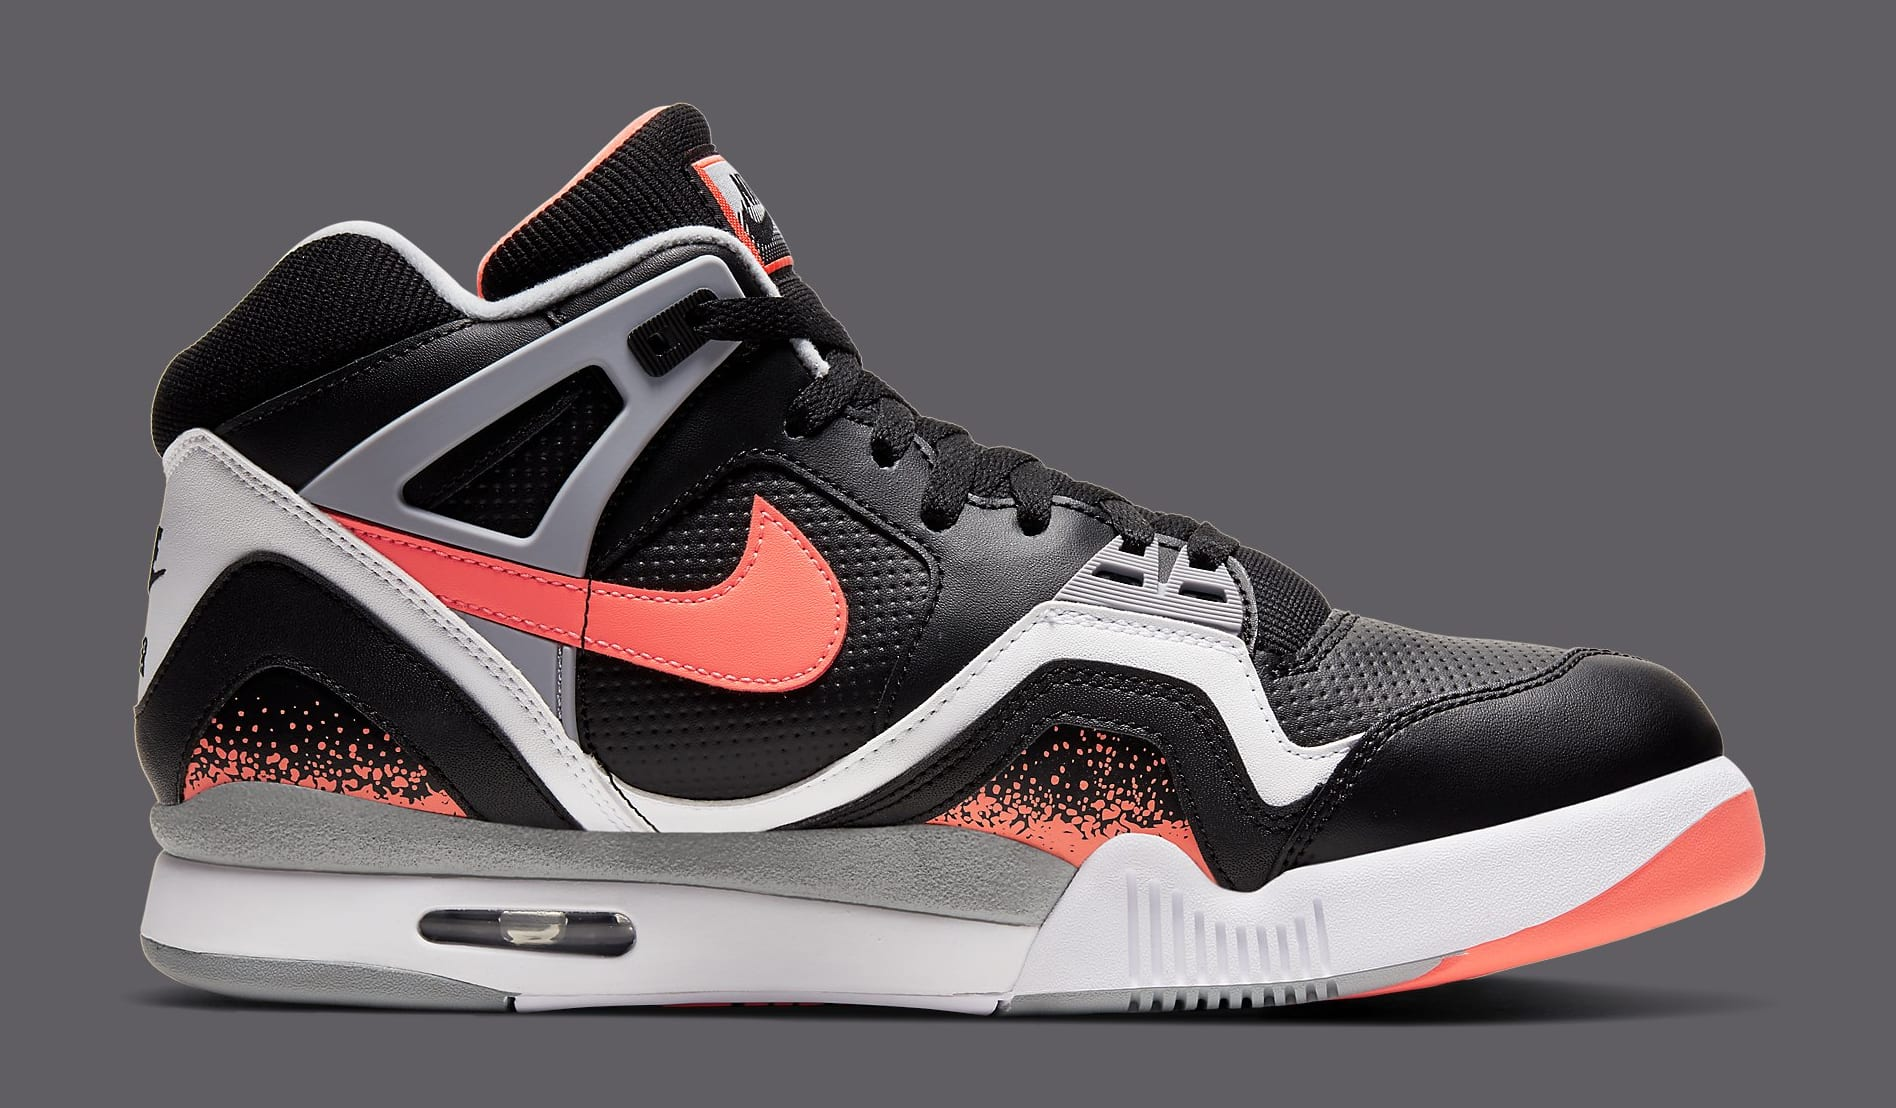 nike-air-tech-challenge-2-black-lava-cq0936-001-medial